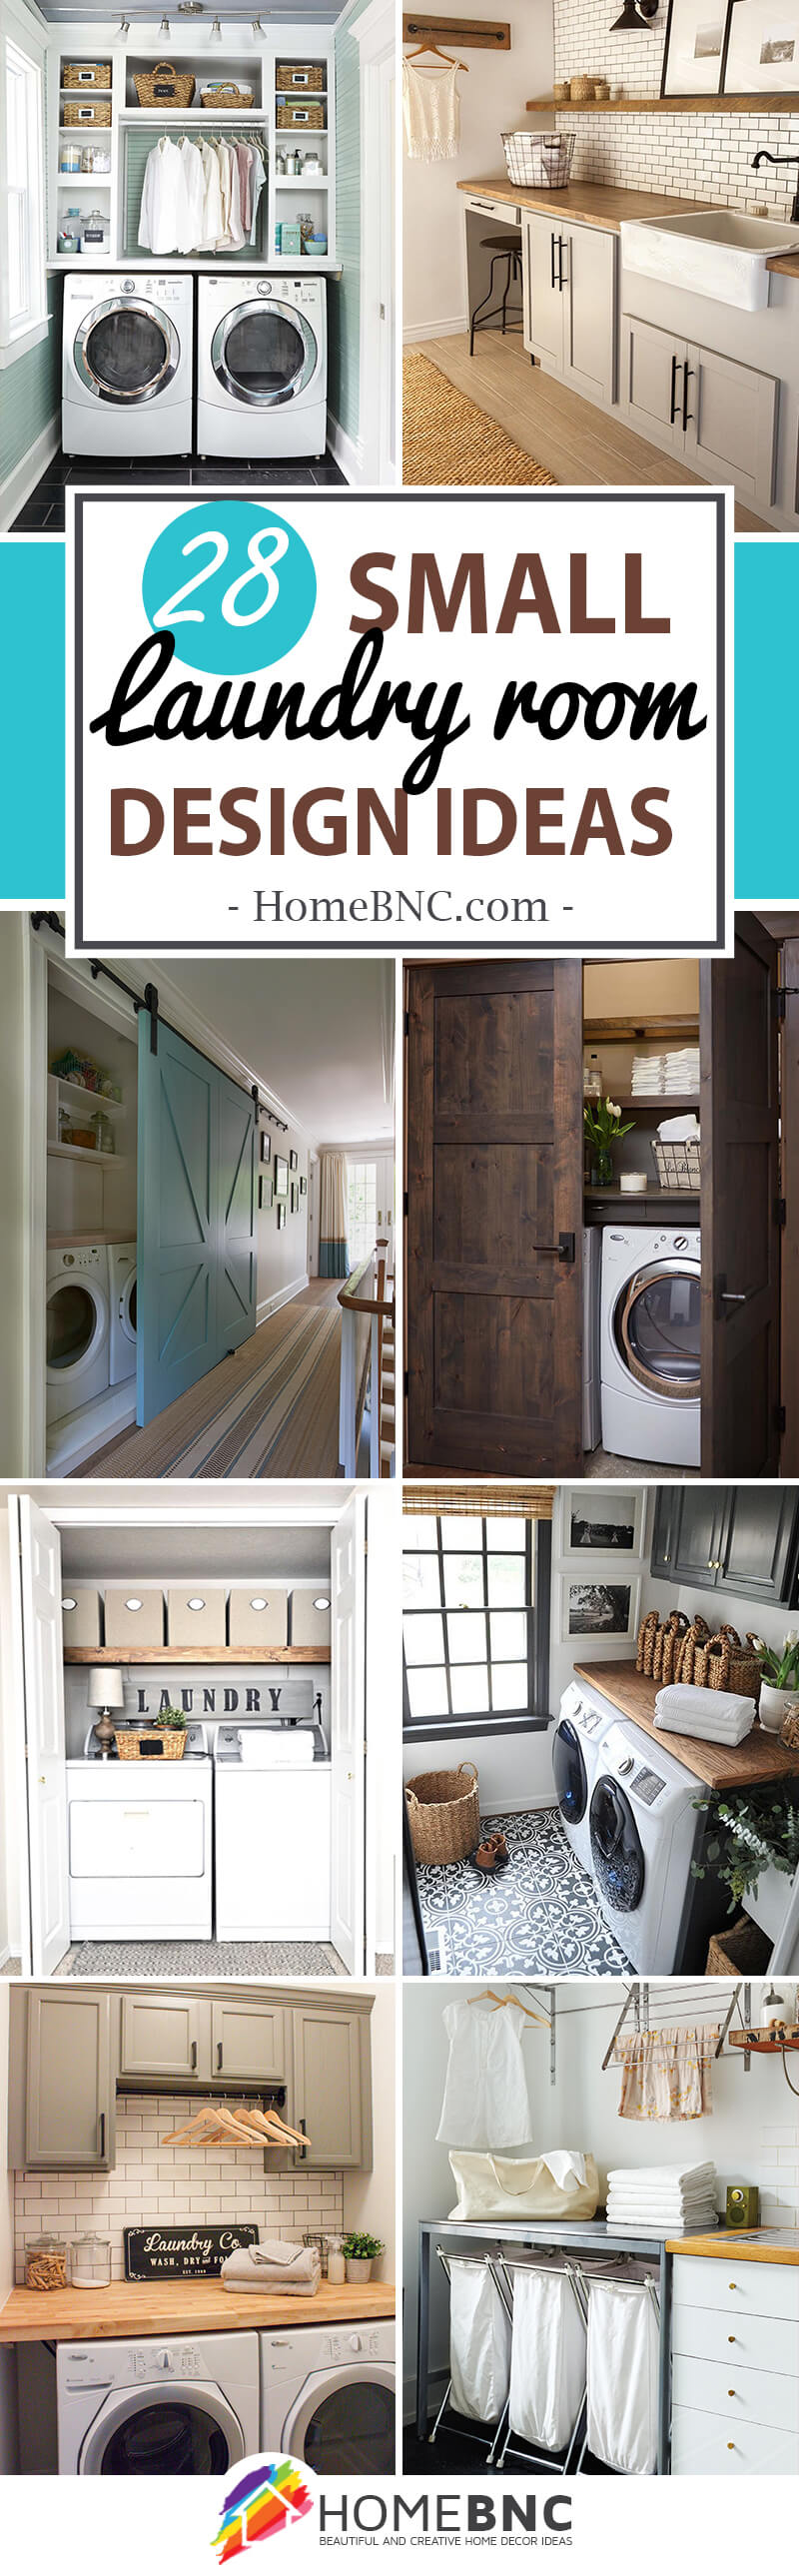 28 Stylish Small Laundry Room Design Ideas To Inspire You